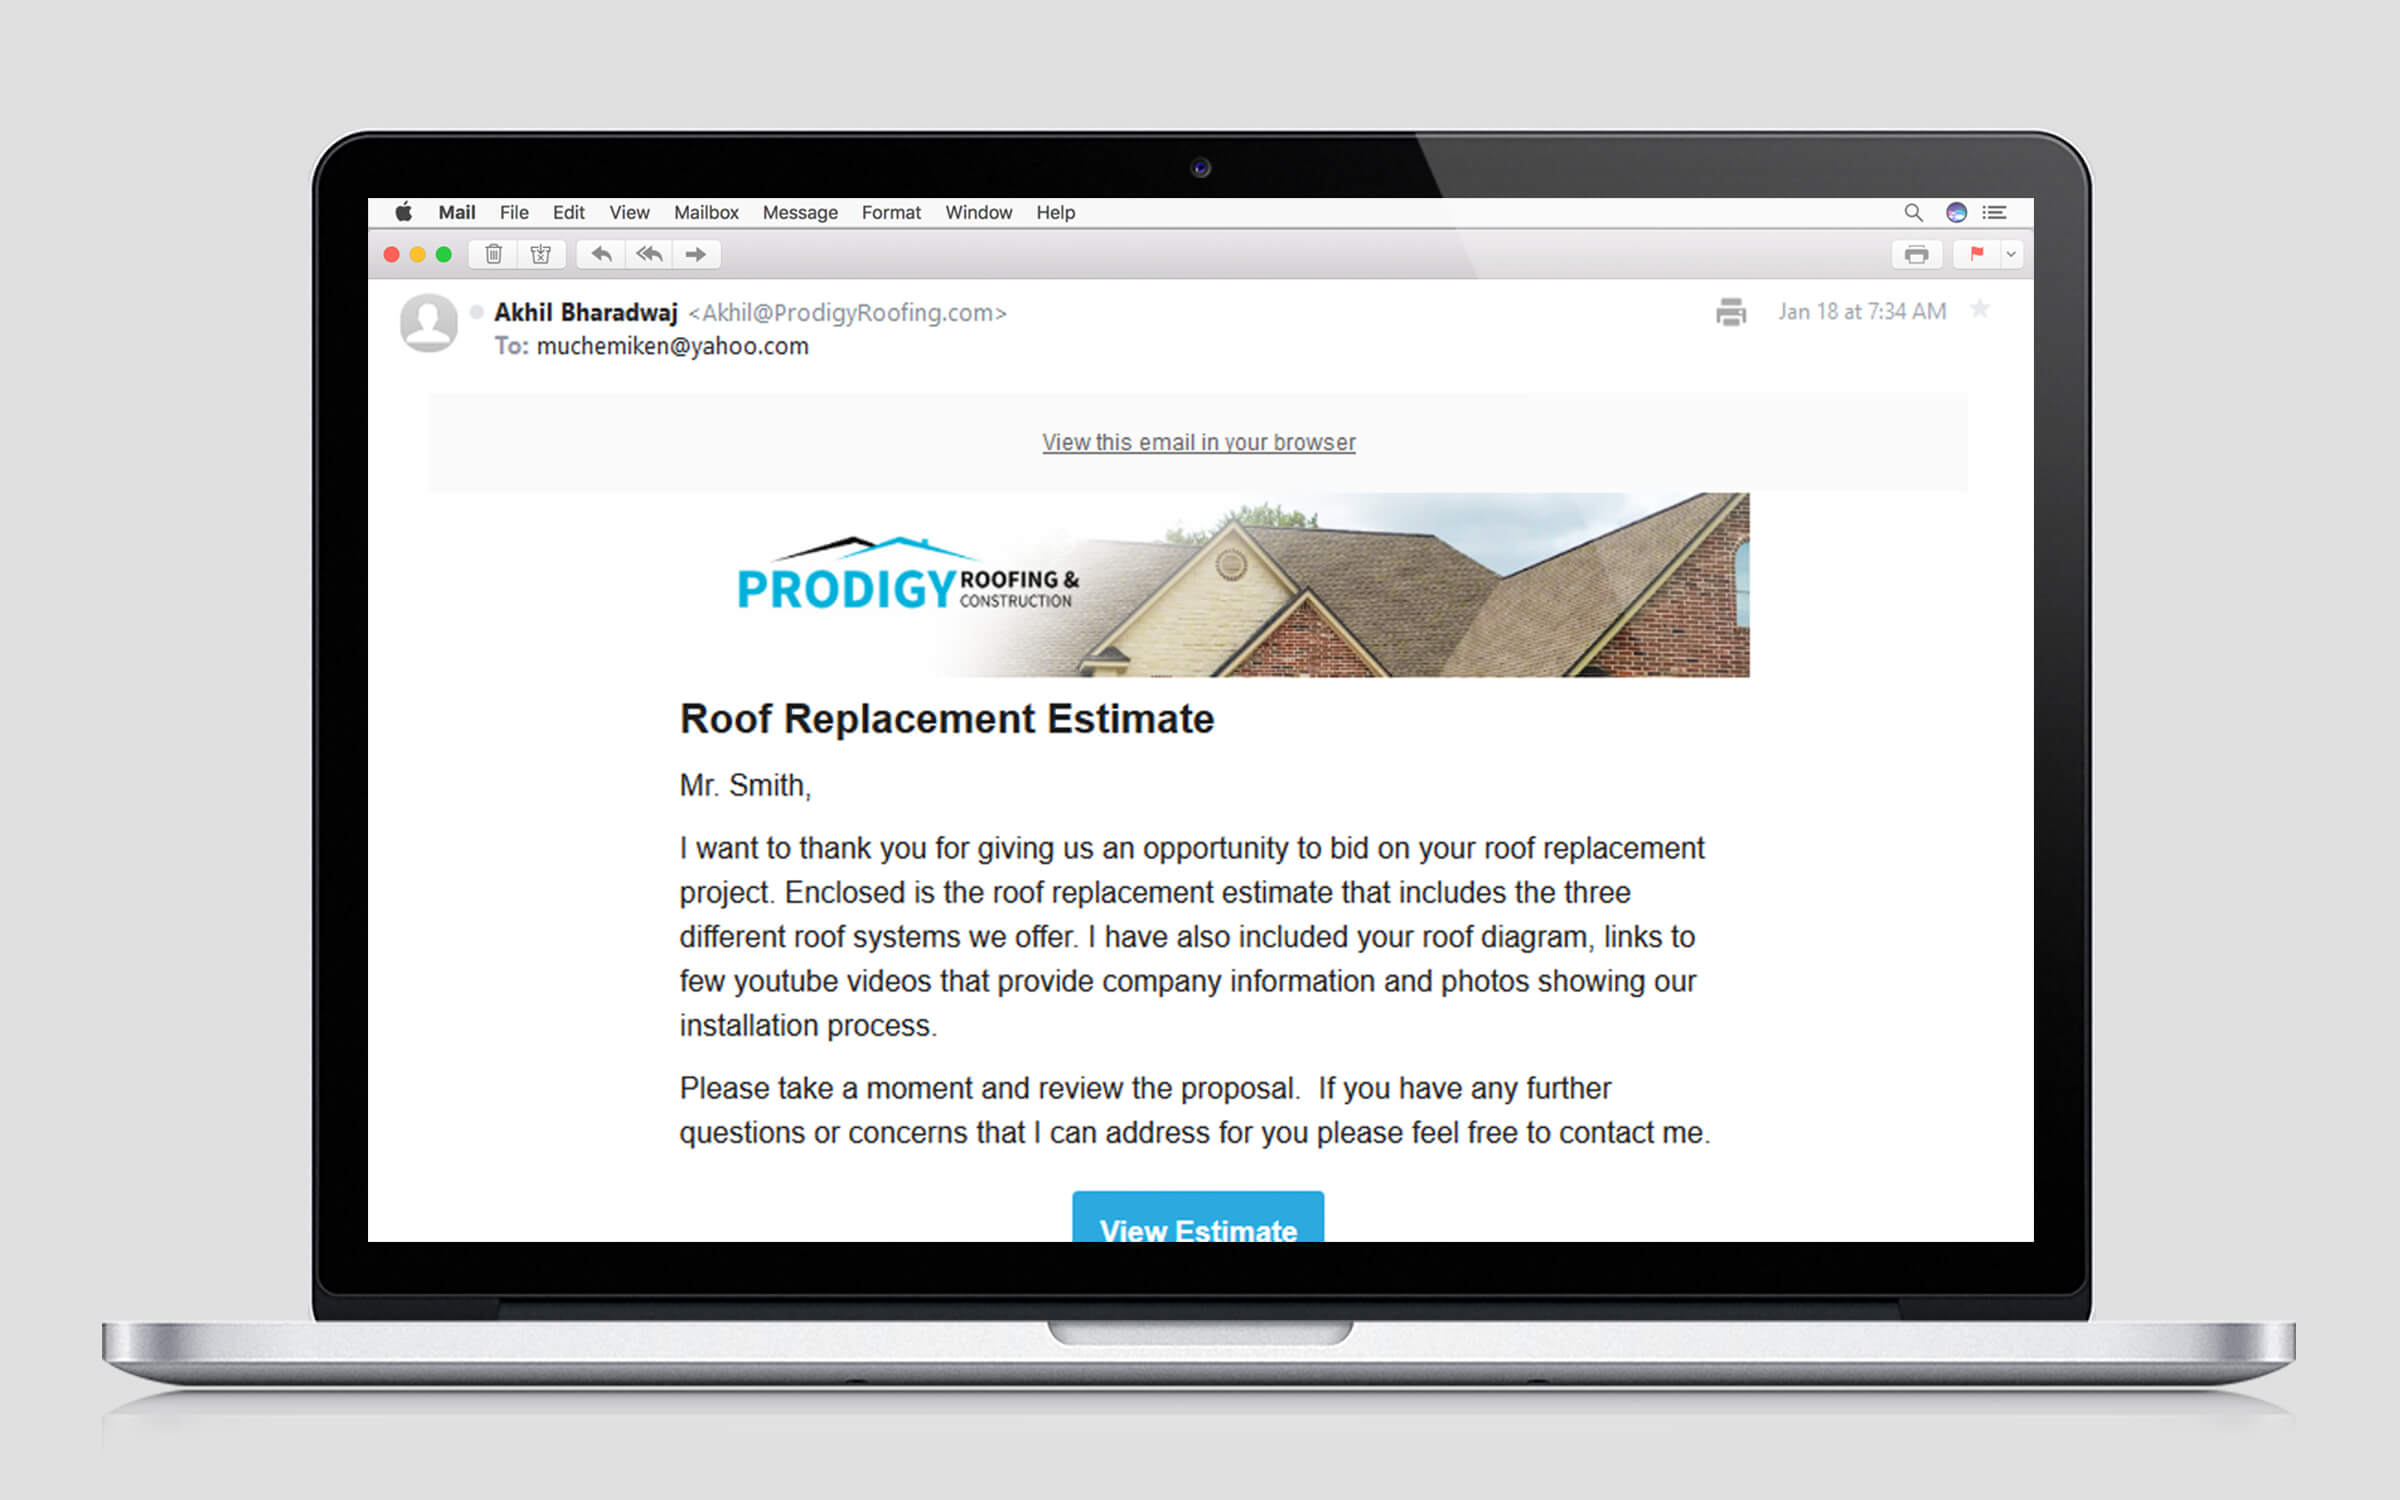 prodigy roofing system email marketing design